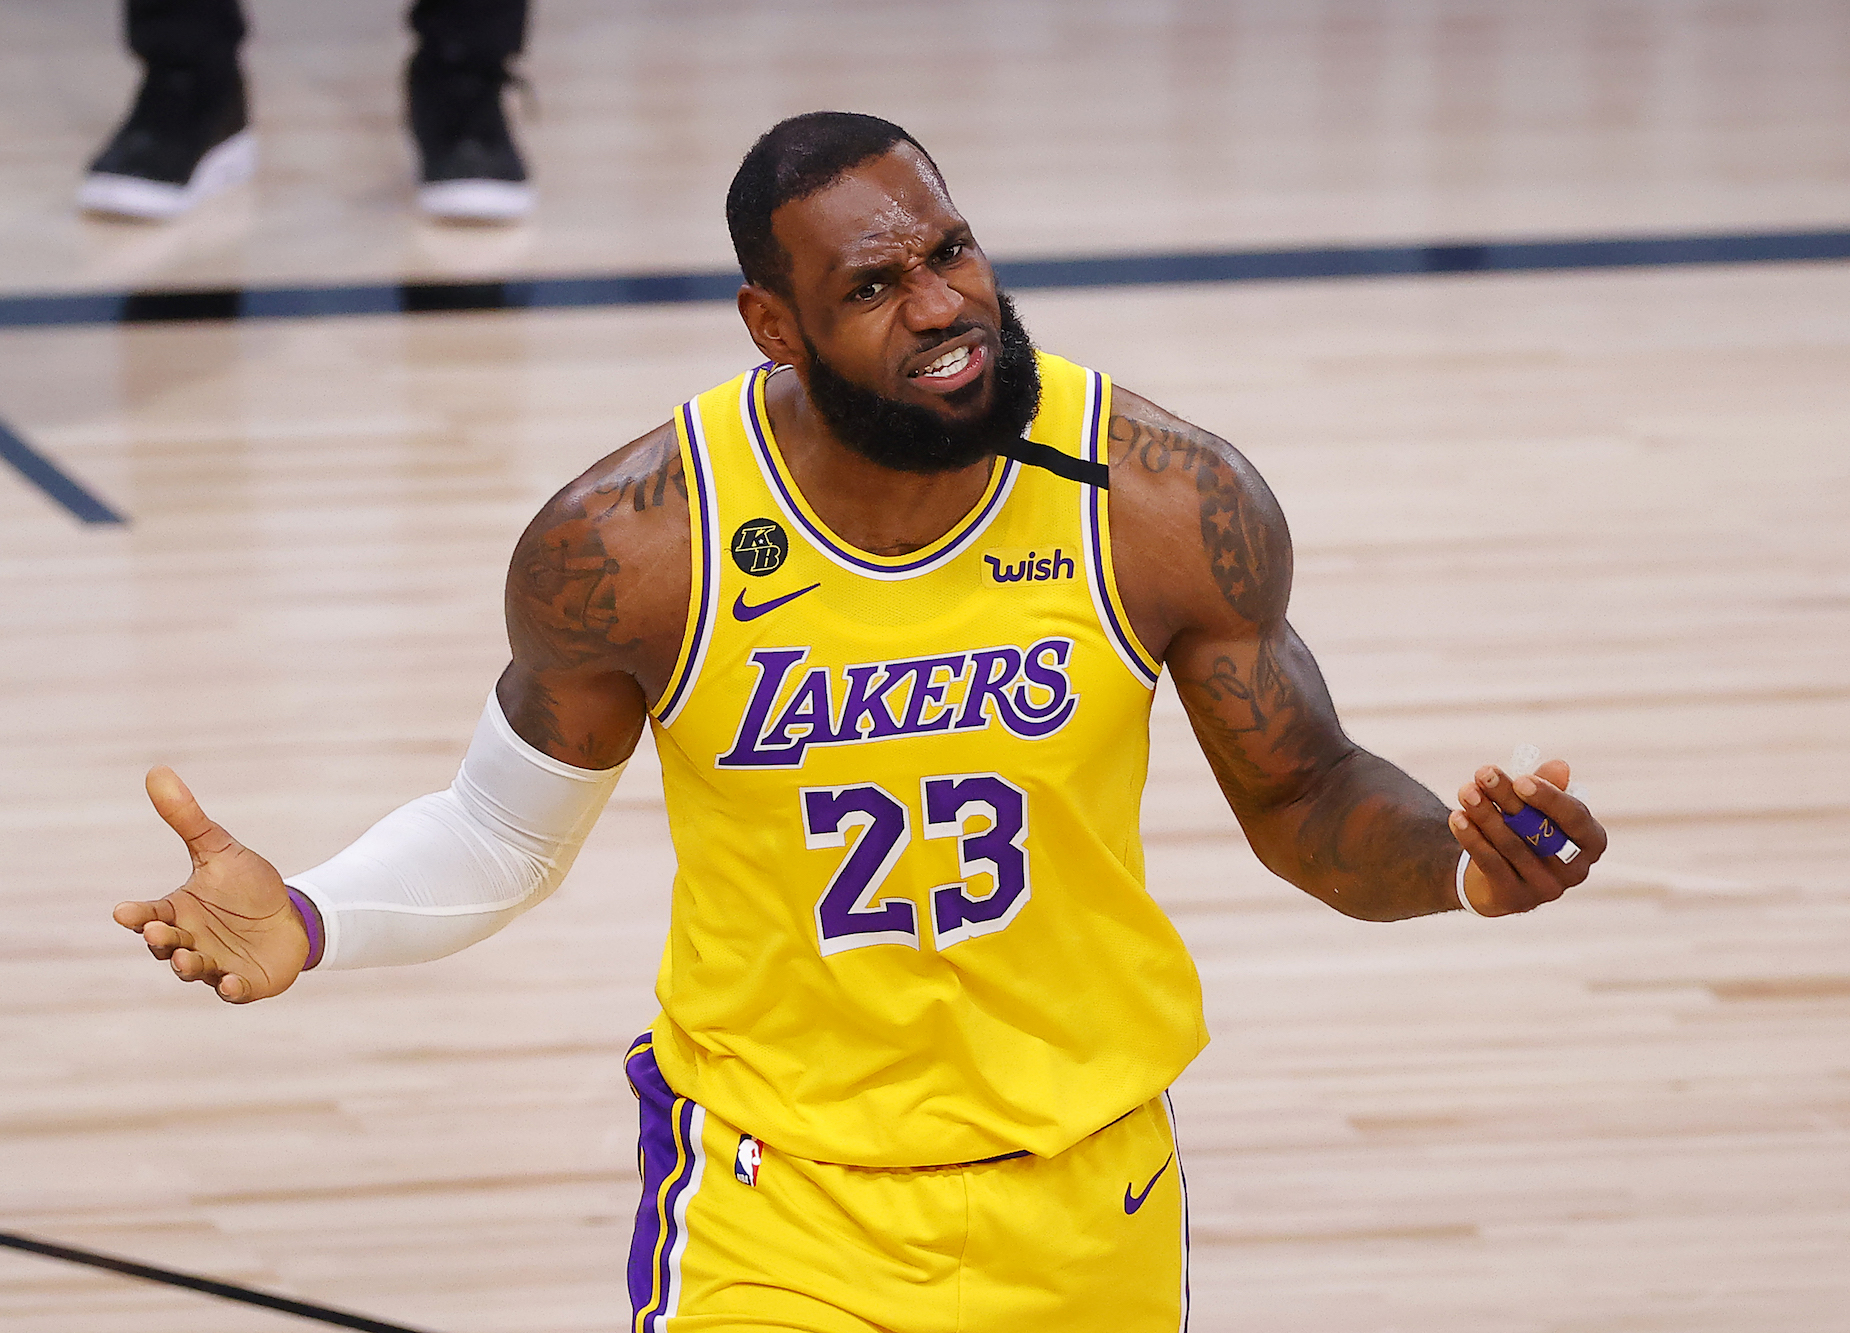 Ahead of Game 4 of the NBA Finals, LeBron James inspired his Lakers teammates with a simple, two-word text message.